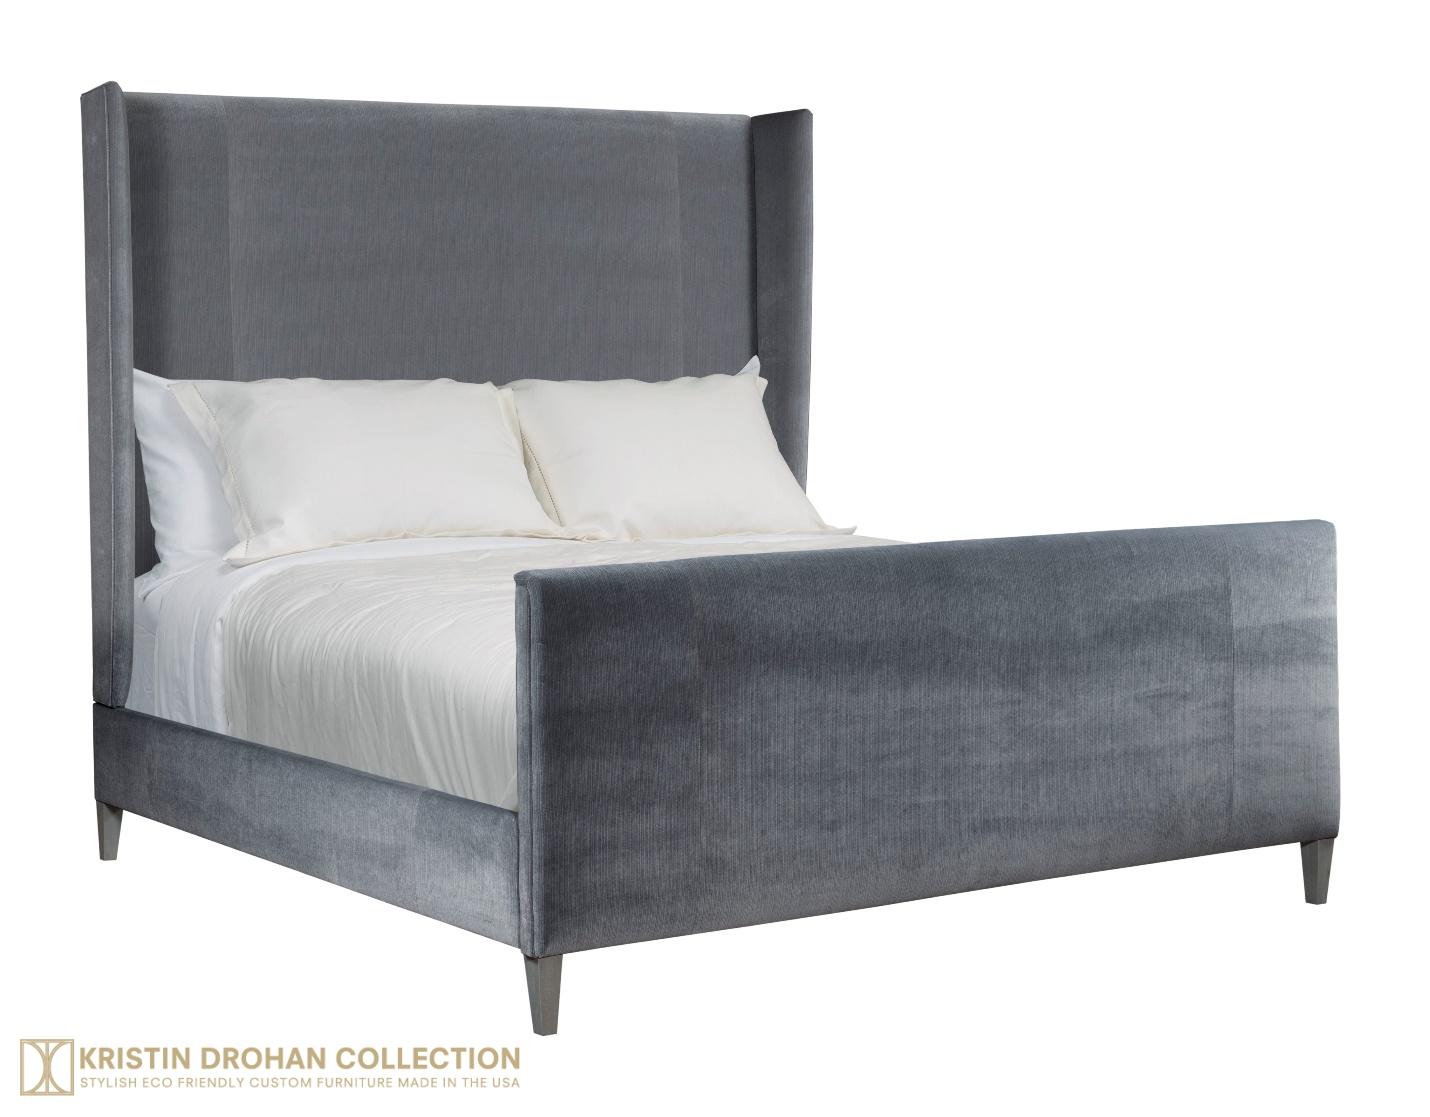 Destin Bed, Kristin Drohan Collection